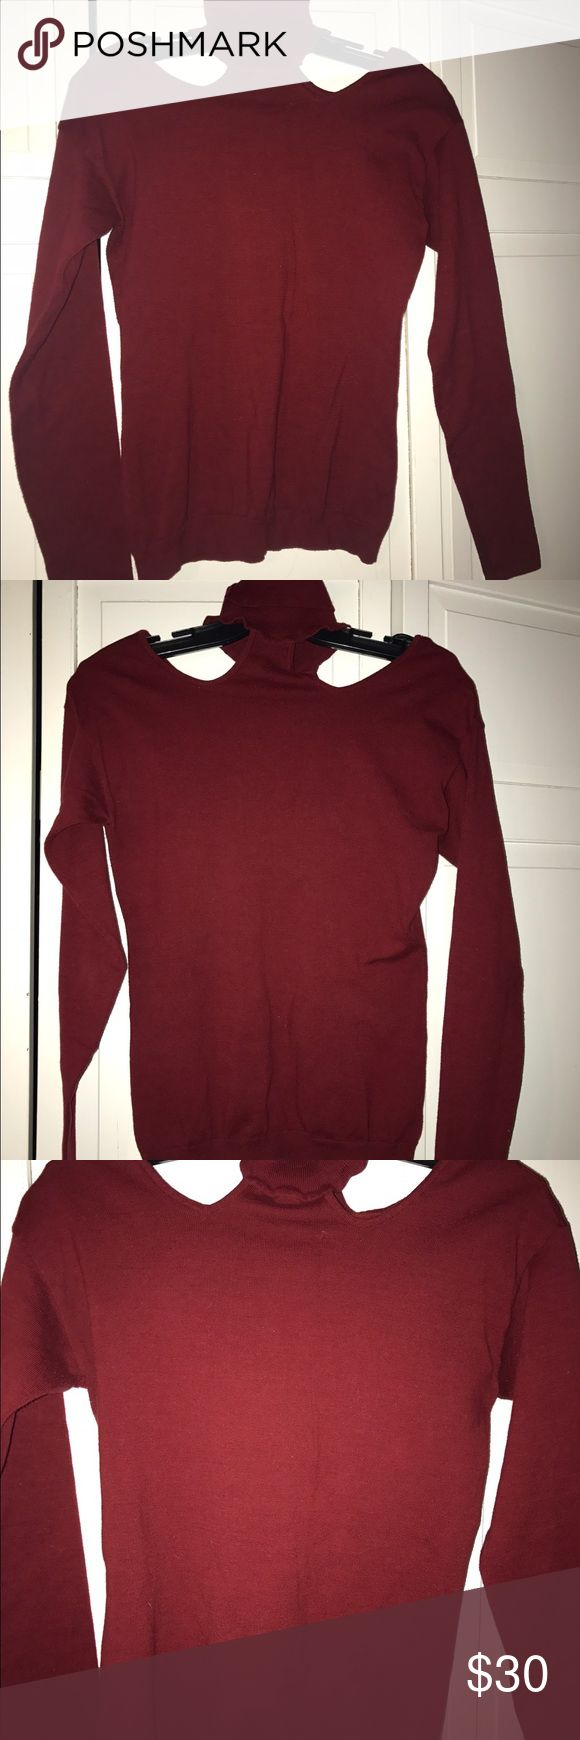 Victoria's Secret cold shoulder turtleneck size M Soooooooo sexy and beautiful! Worn once, excellent condition, zero flaws. Bought from Vicki secret website. Fits more like a small. Burgundy. Moda International Sweaters Cowl & Turtlenecks